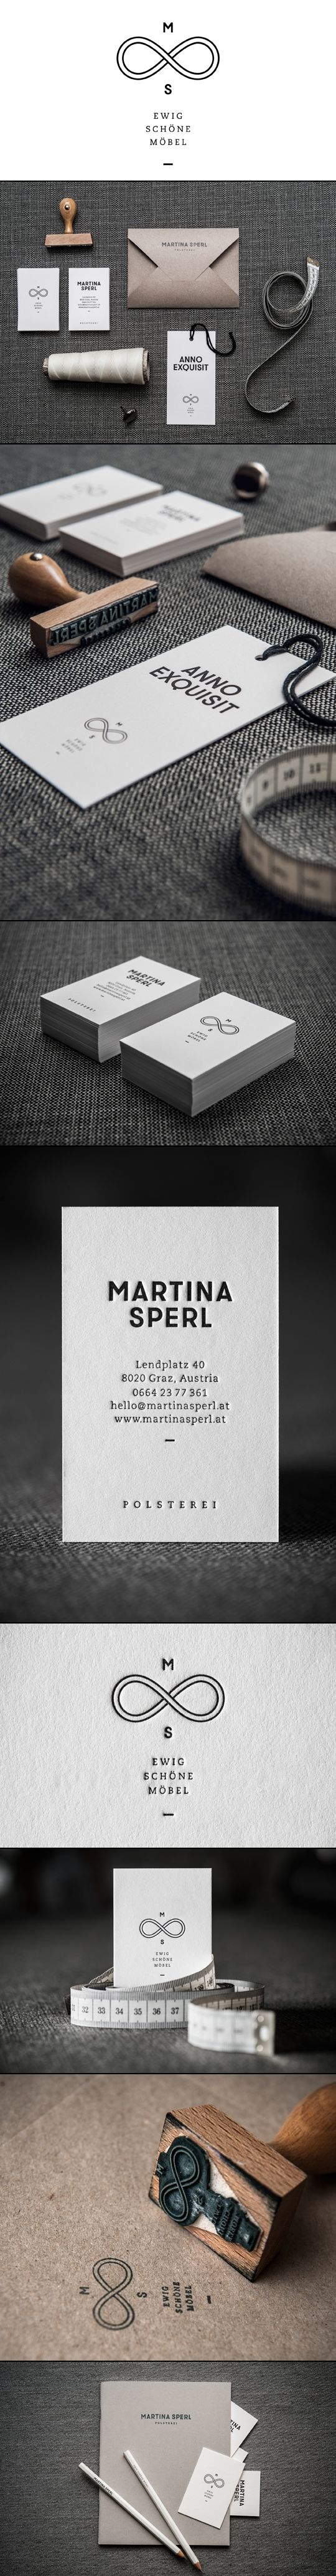 Martina Sperl /